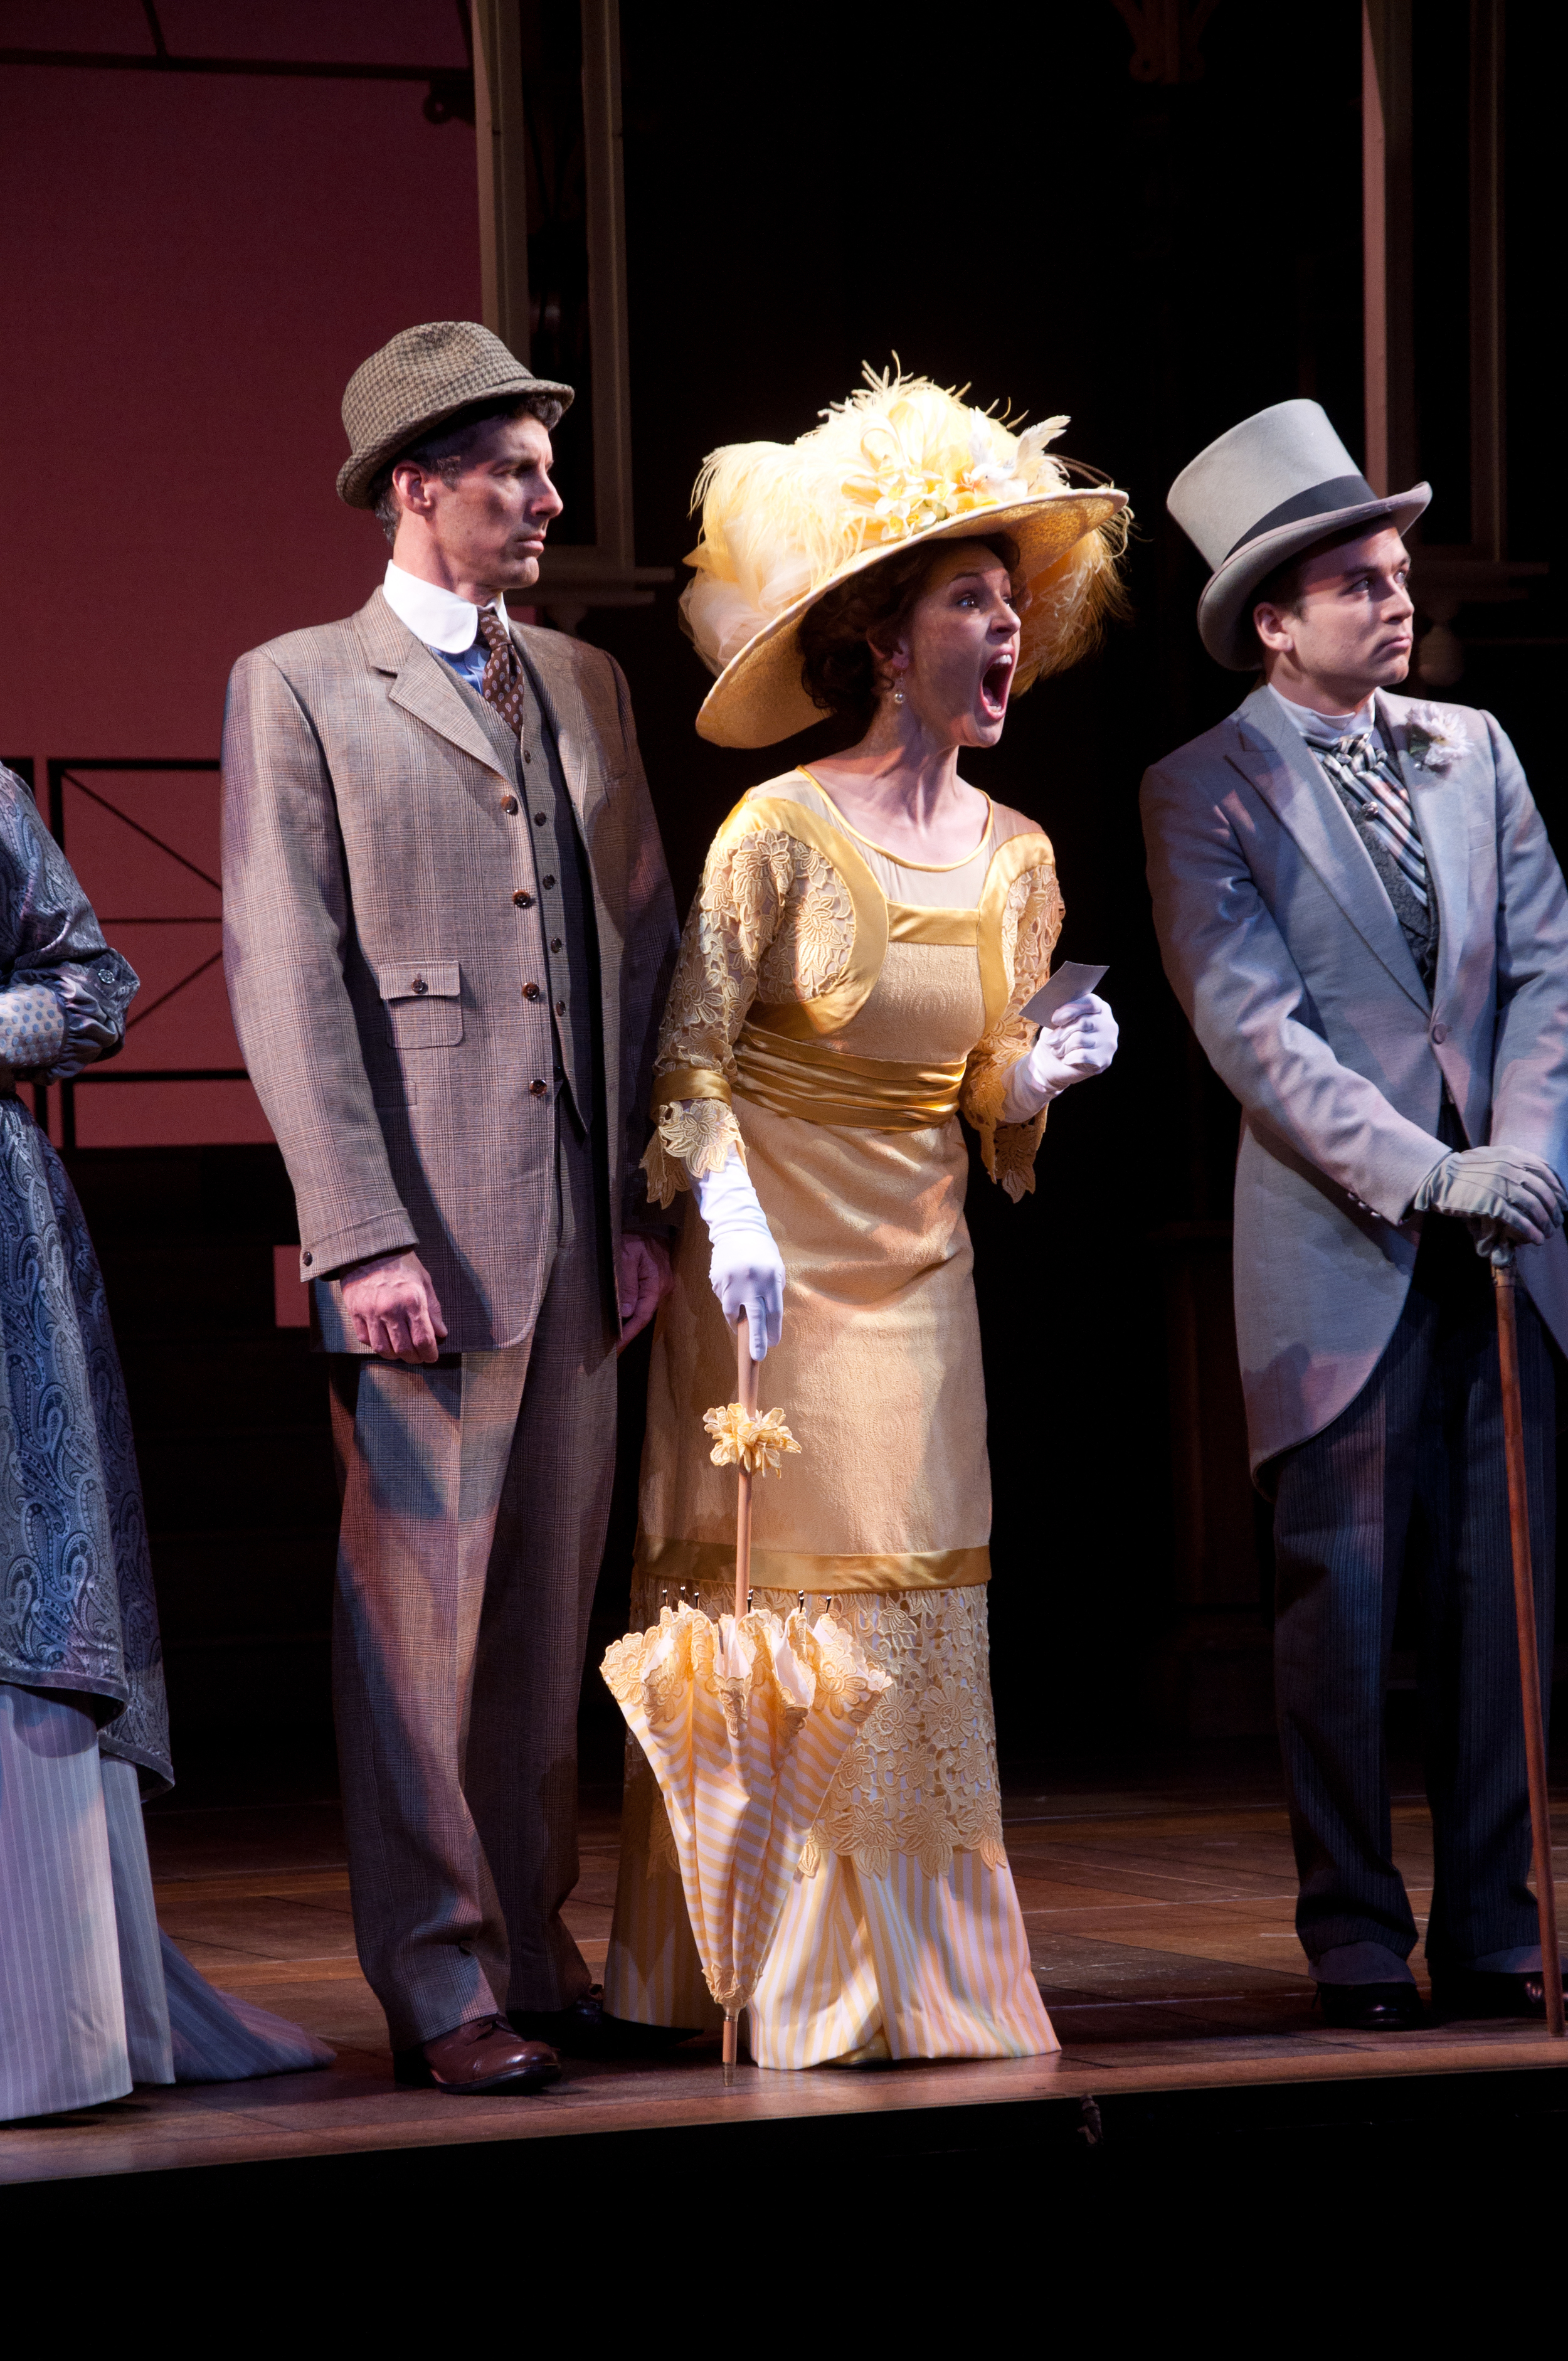 as-eliza-doolittle-in-my-fair-lady-with-jeff-parker-and-sean-effinger-dean_6960998703_o.jpg